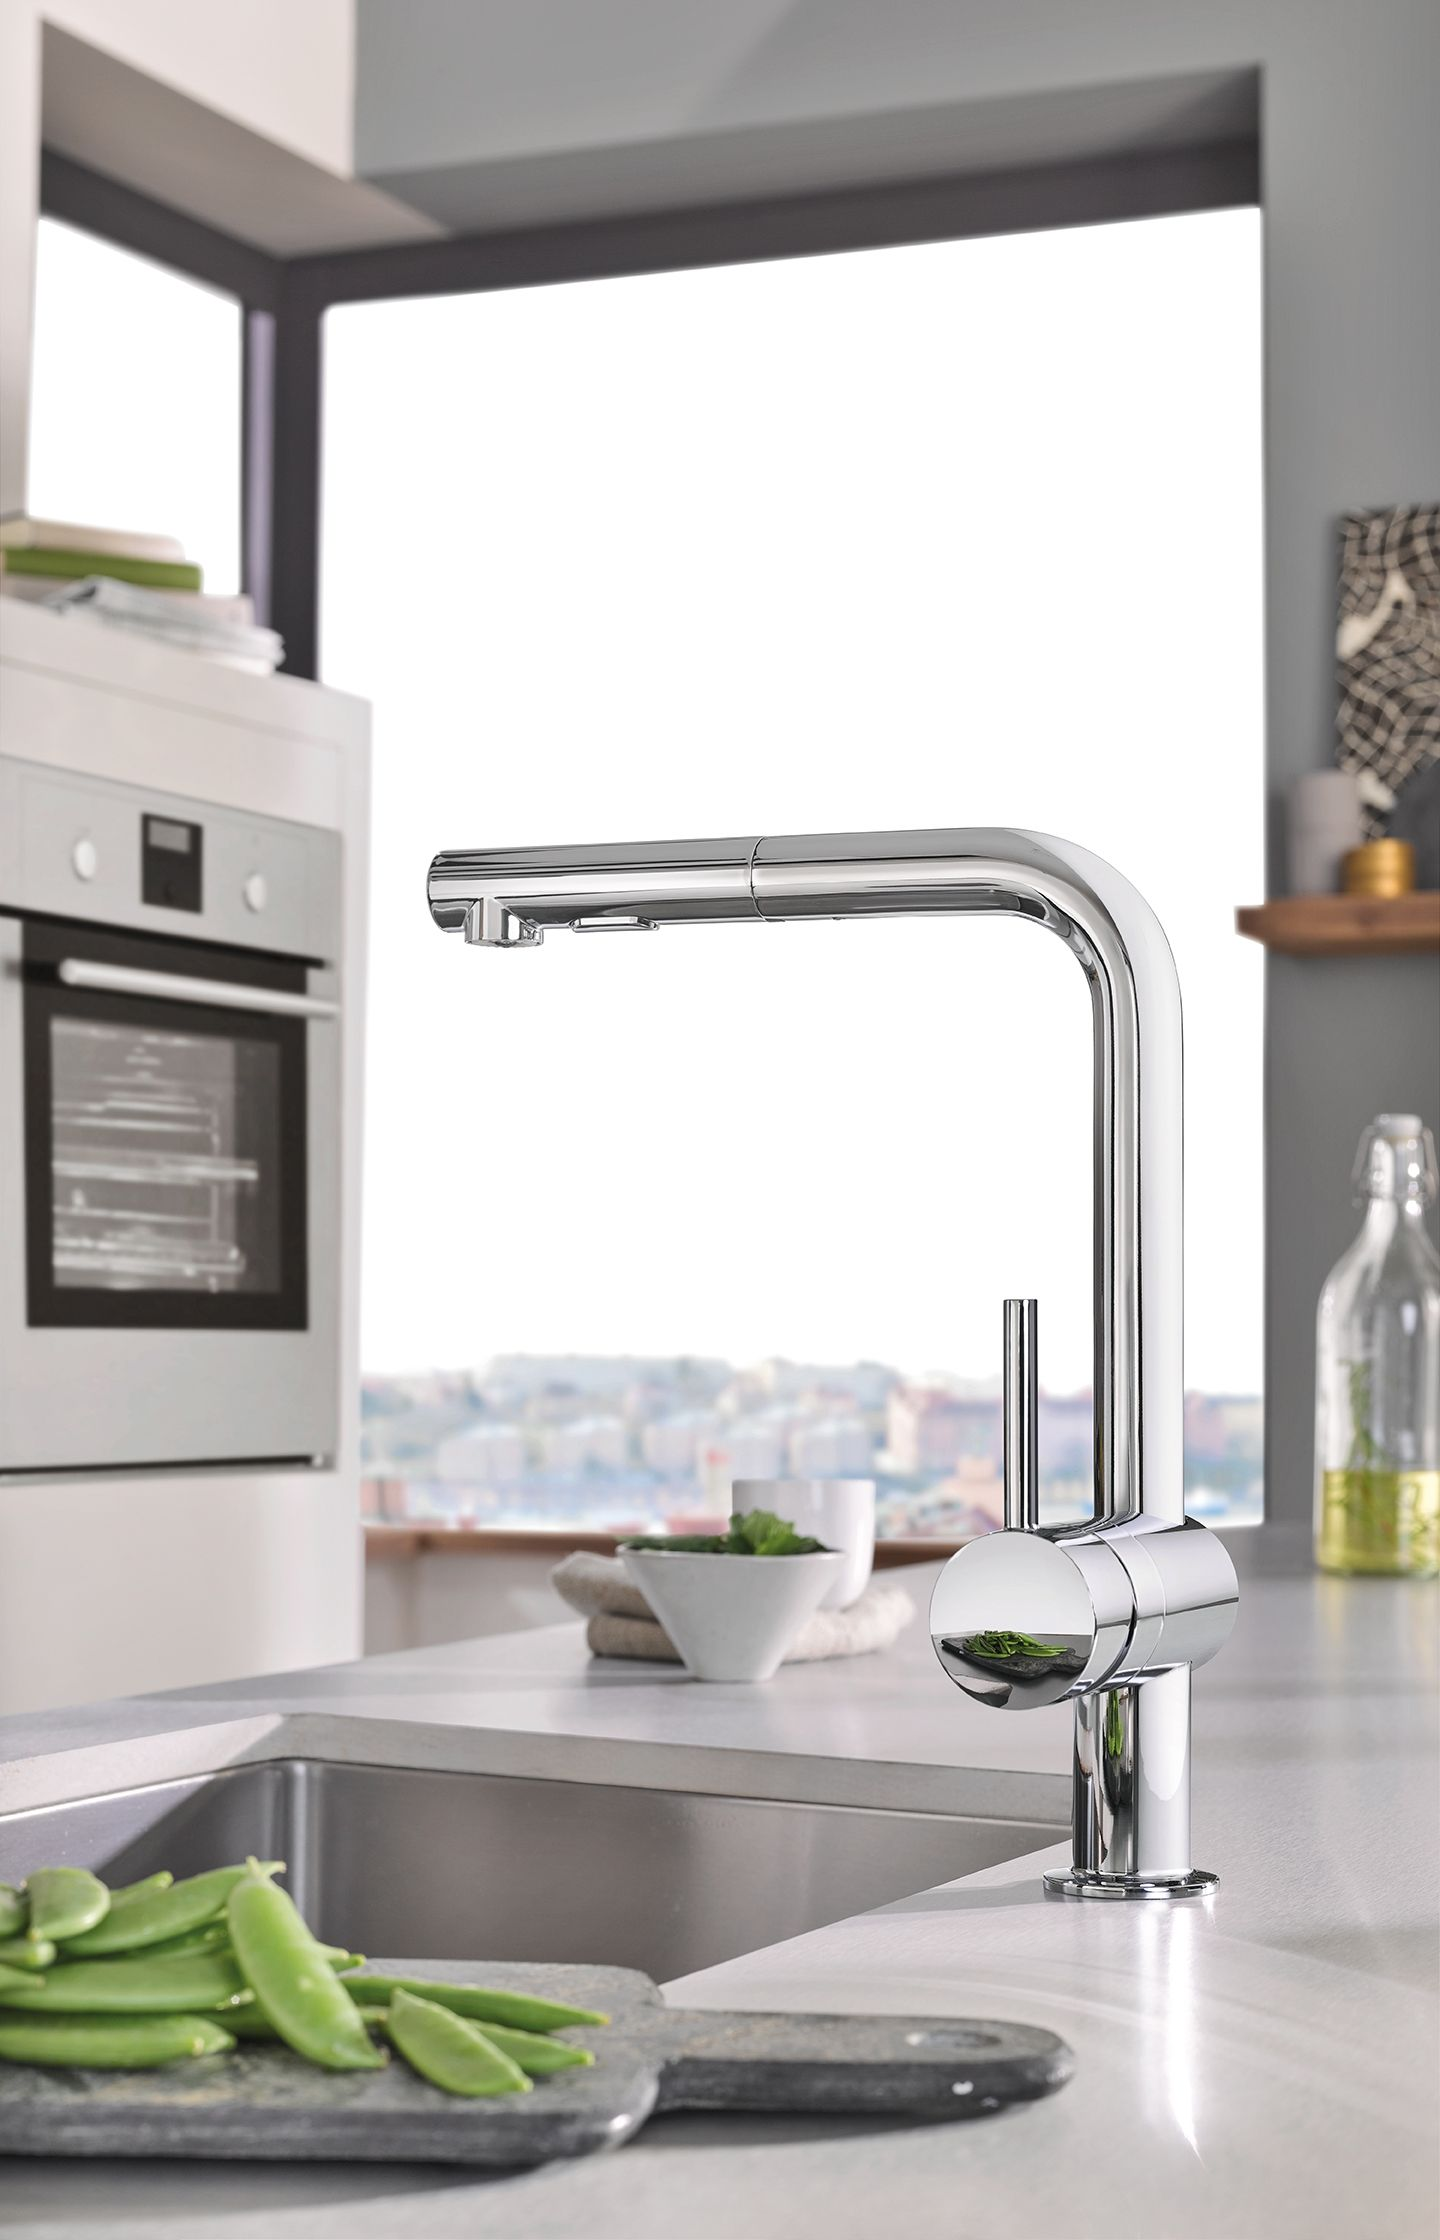 Small kitchen upgrades, like a functional pull-out Grohe Minta ...